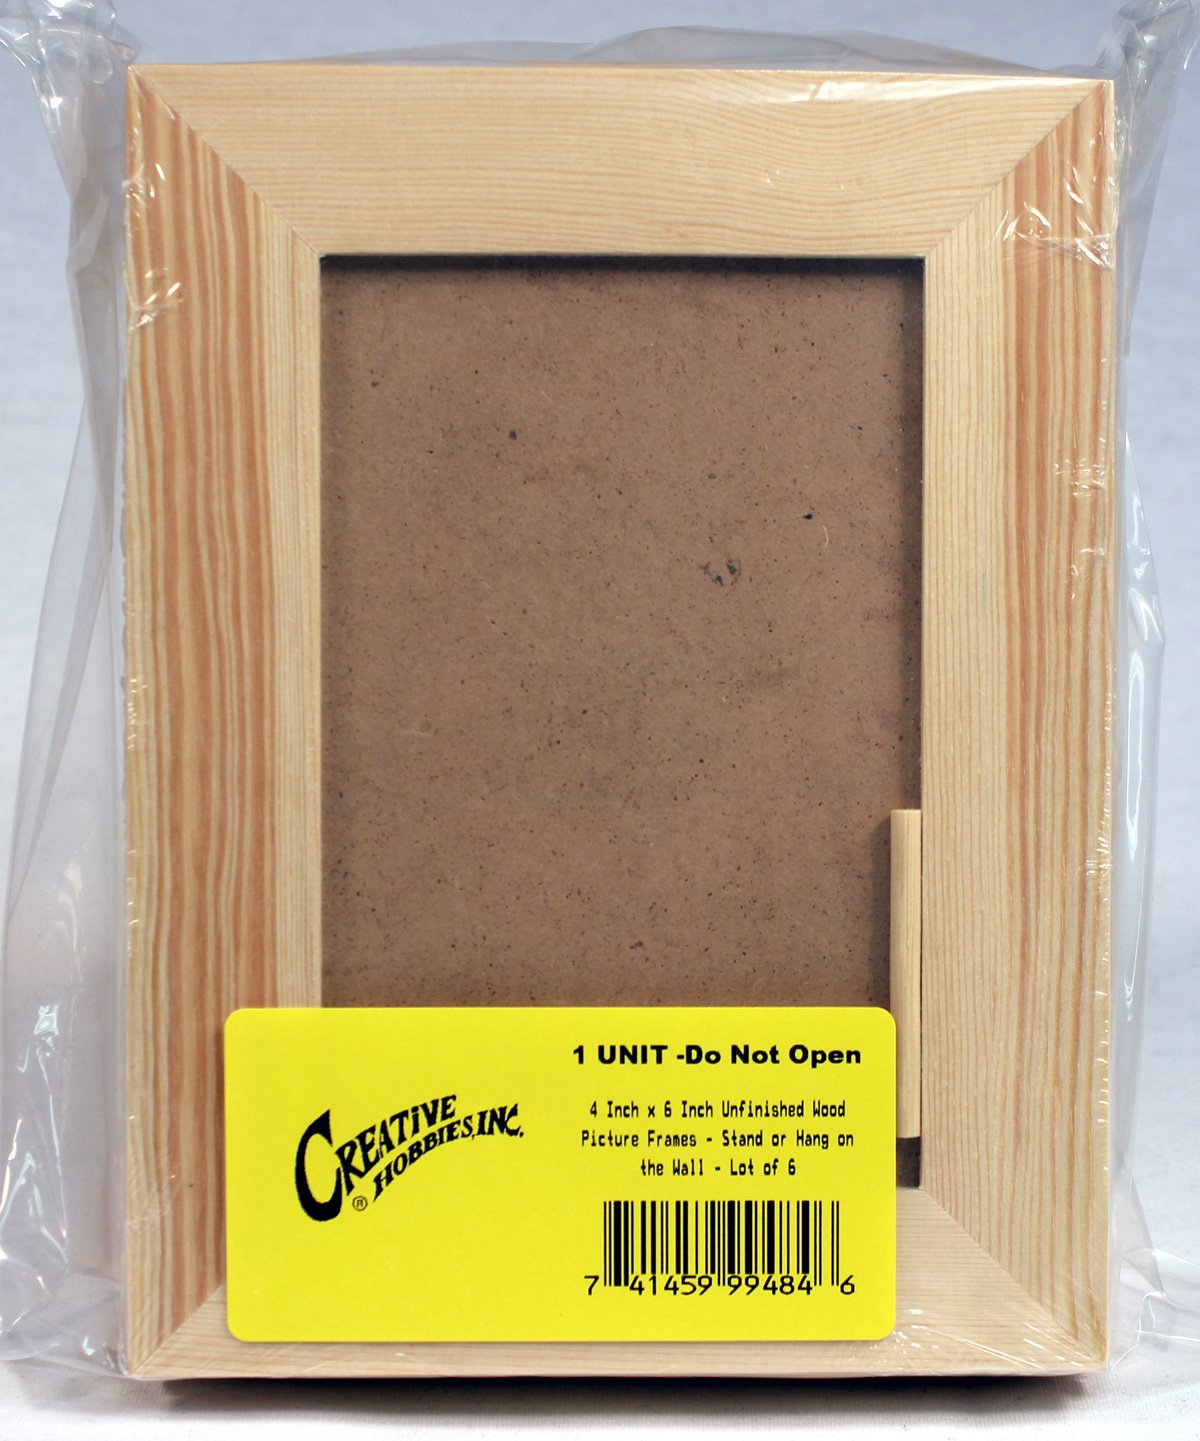 Amazon creative hobbies 4 inch x 6 inch unfinished wood amazon creative hobbies 4 inch x 6 inch unfinished wood picture frames stand or hang on the wall lot of 6 jeuxipadfo Images